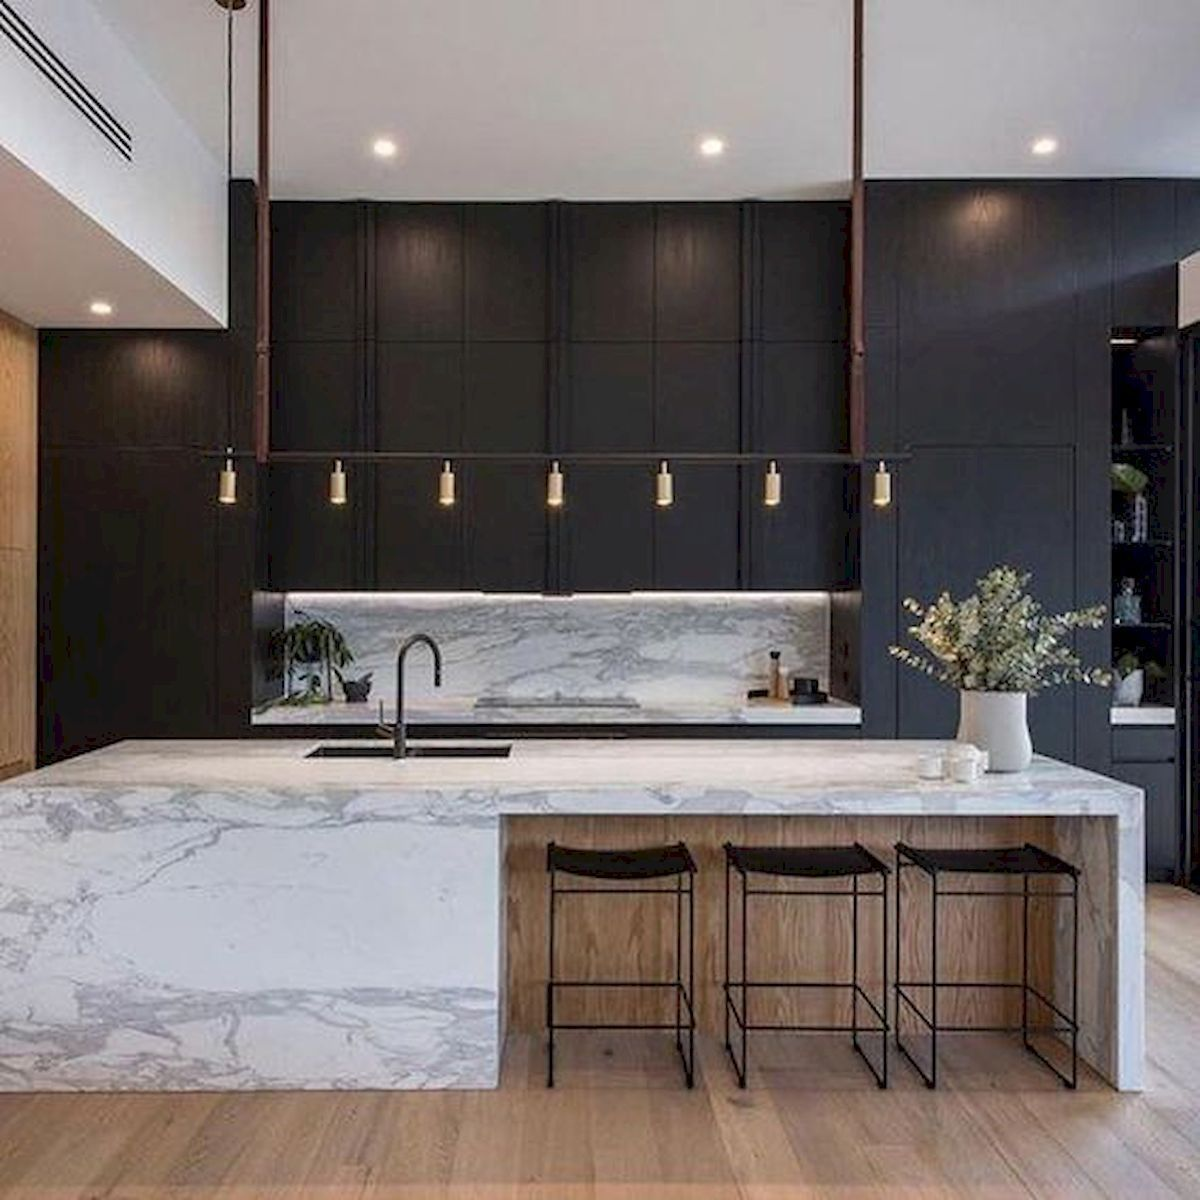 41 Modern Kitchen Island Designs Ideas That Will Impress You Zyhomy Minimalist Kitchen Design Dream Kitchens Design Modern Kitchen Island Design